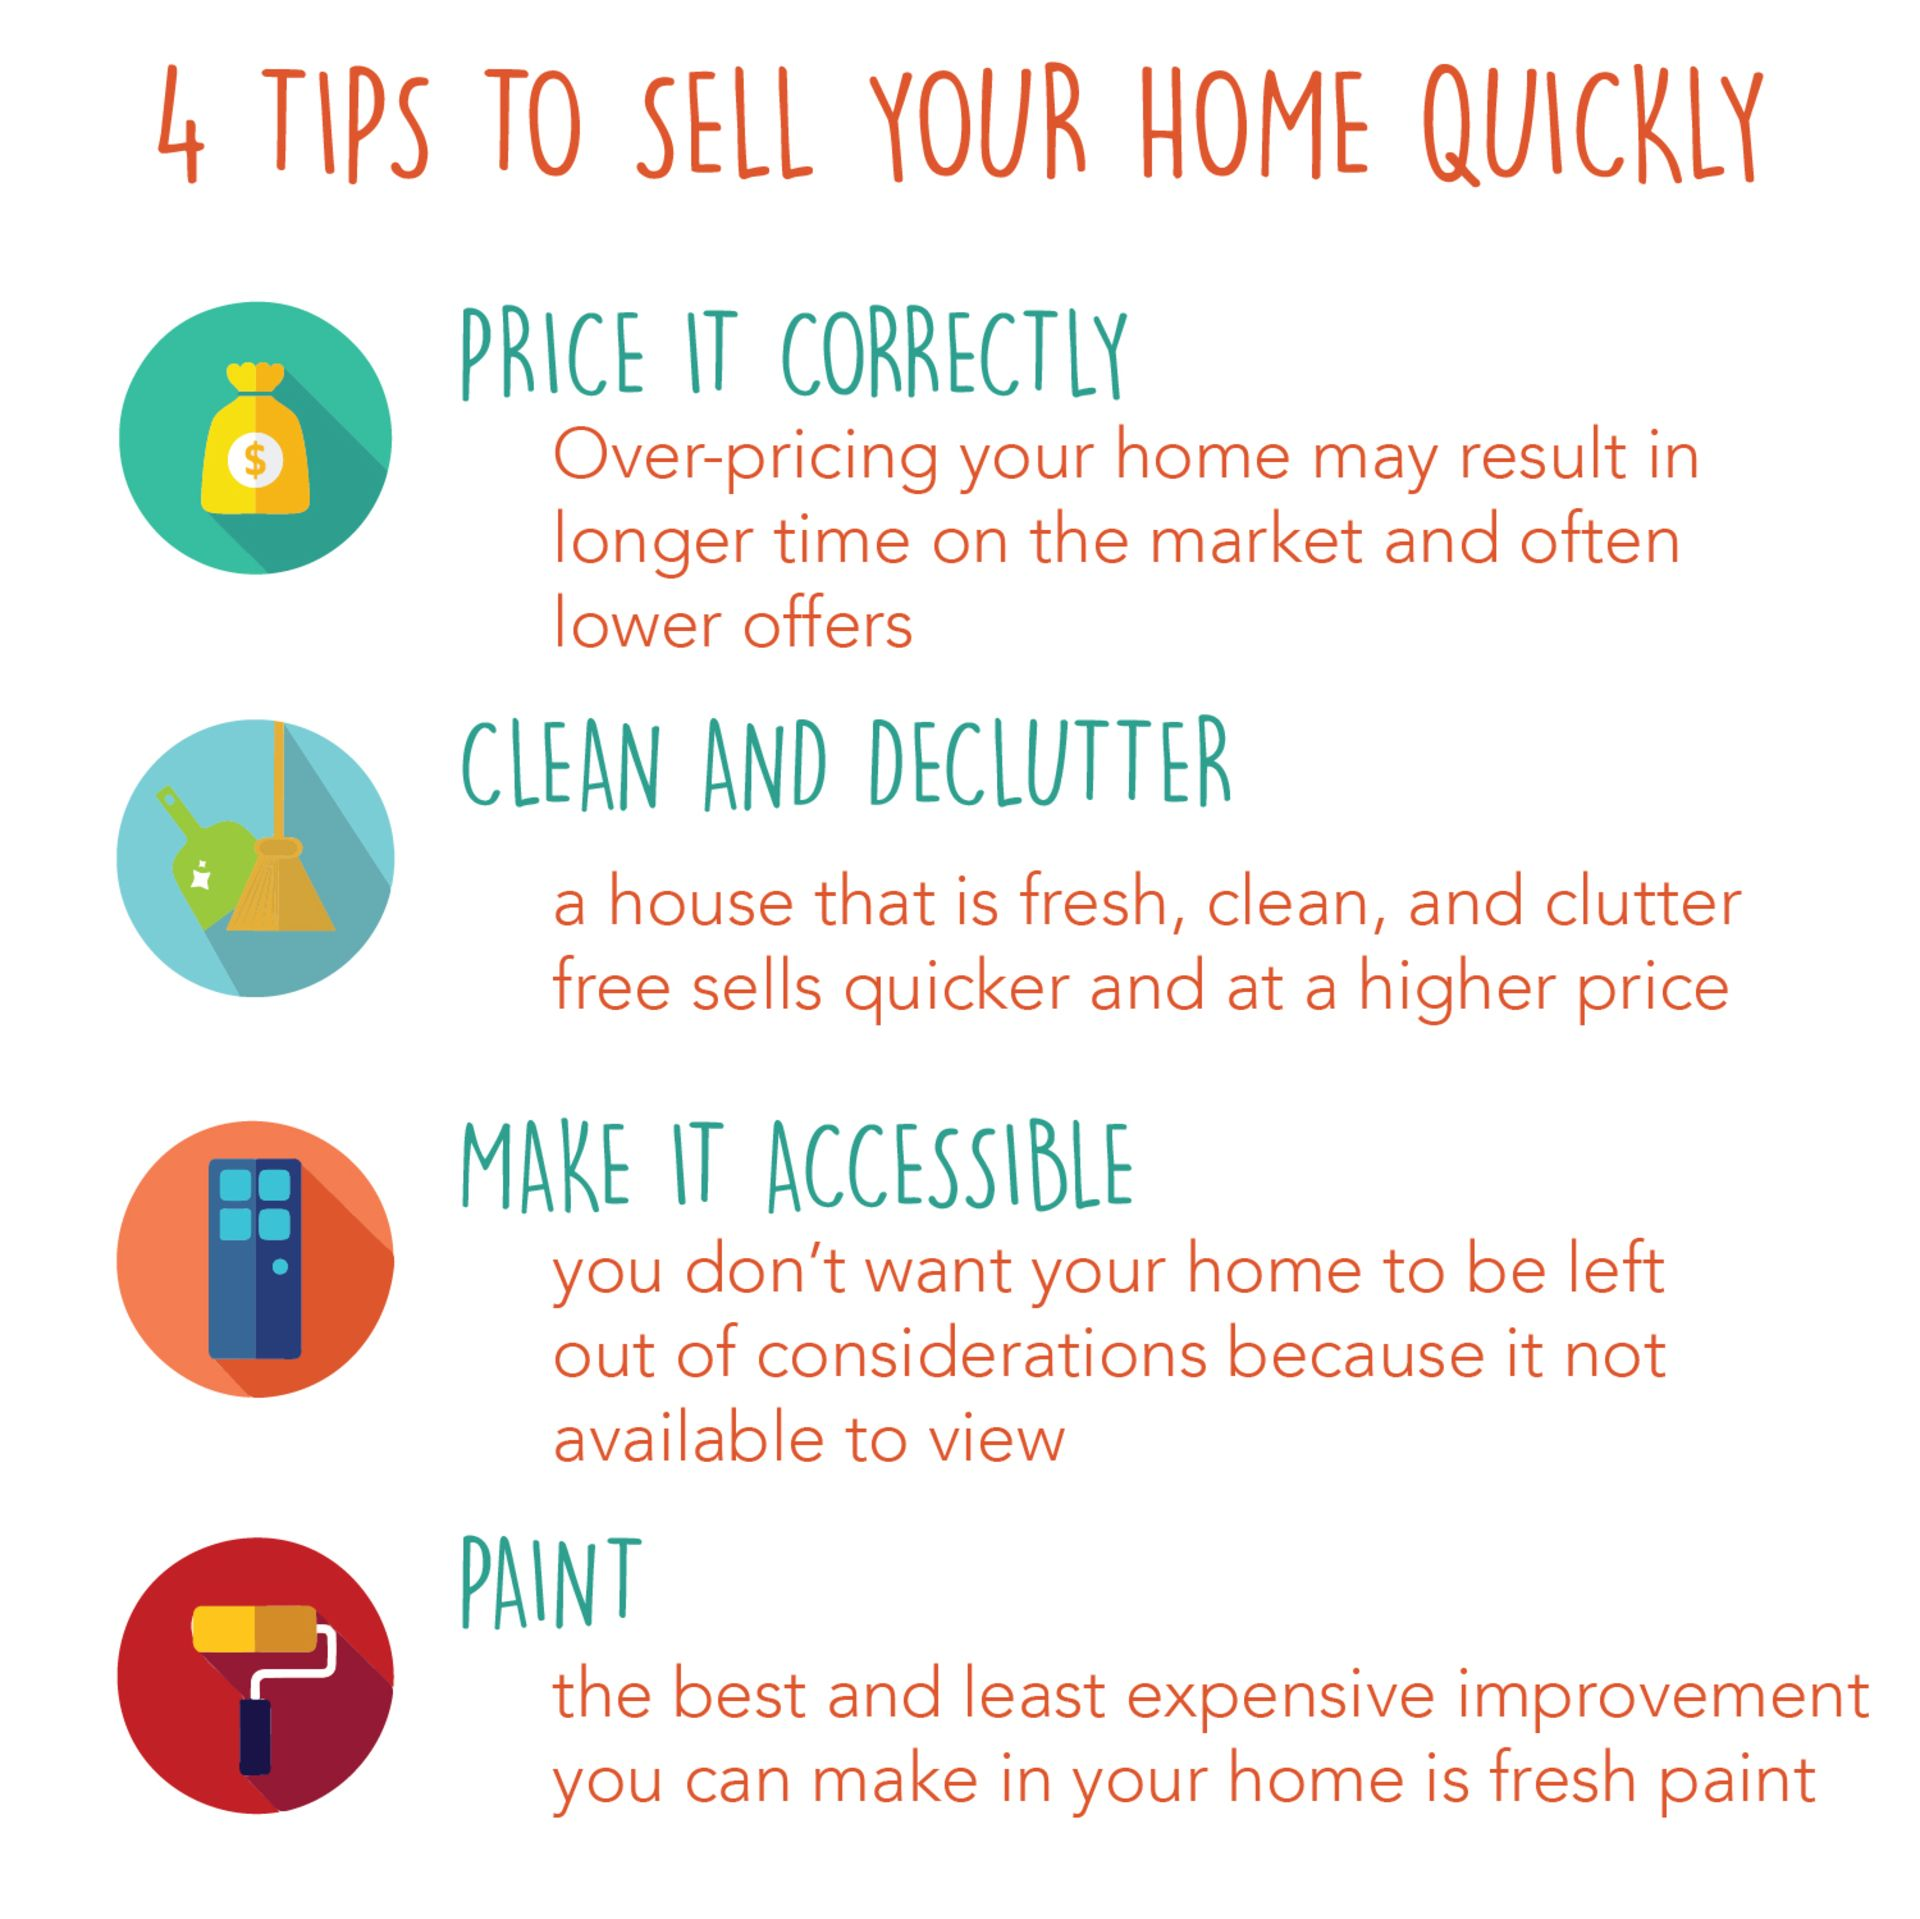 4 Tips to Sell your Home